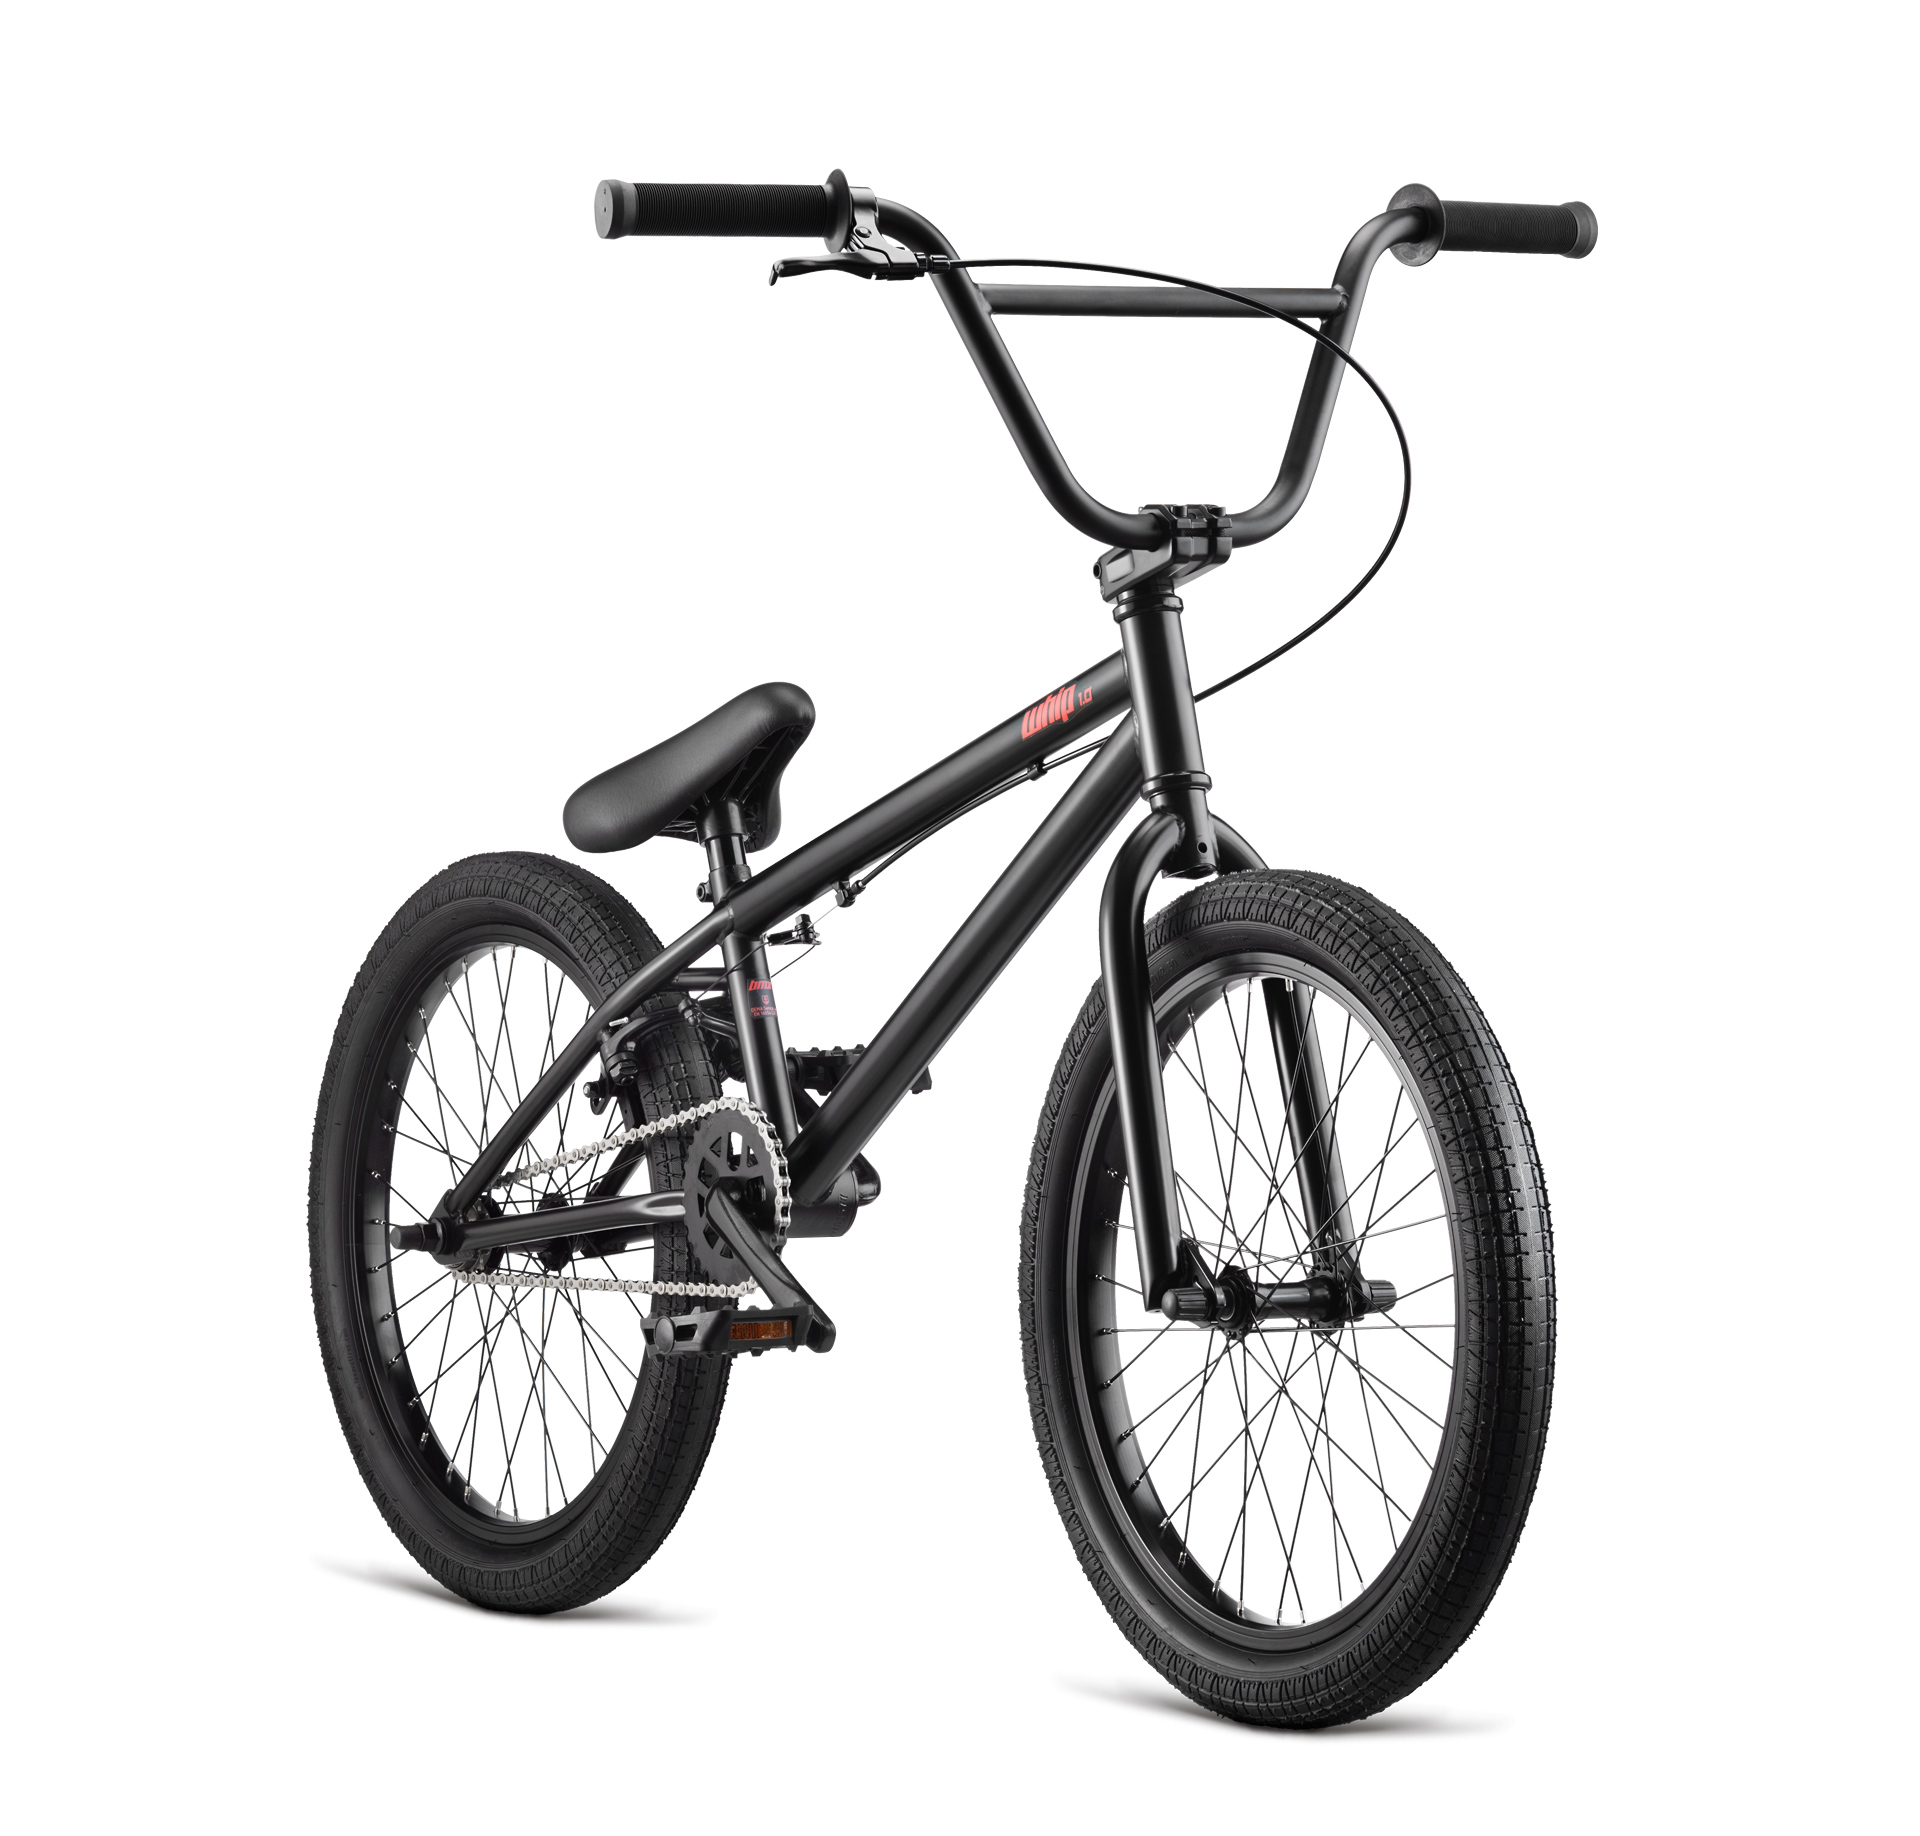 Dema WHIP 1.0 black, 2017